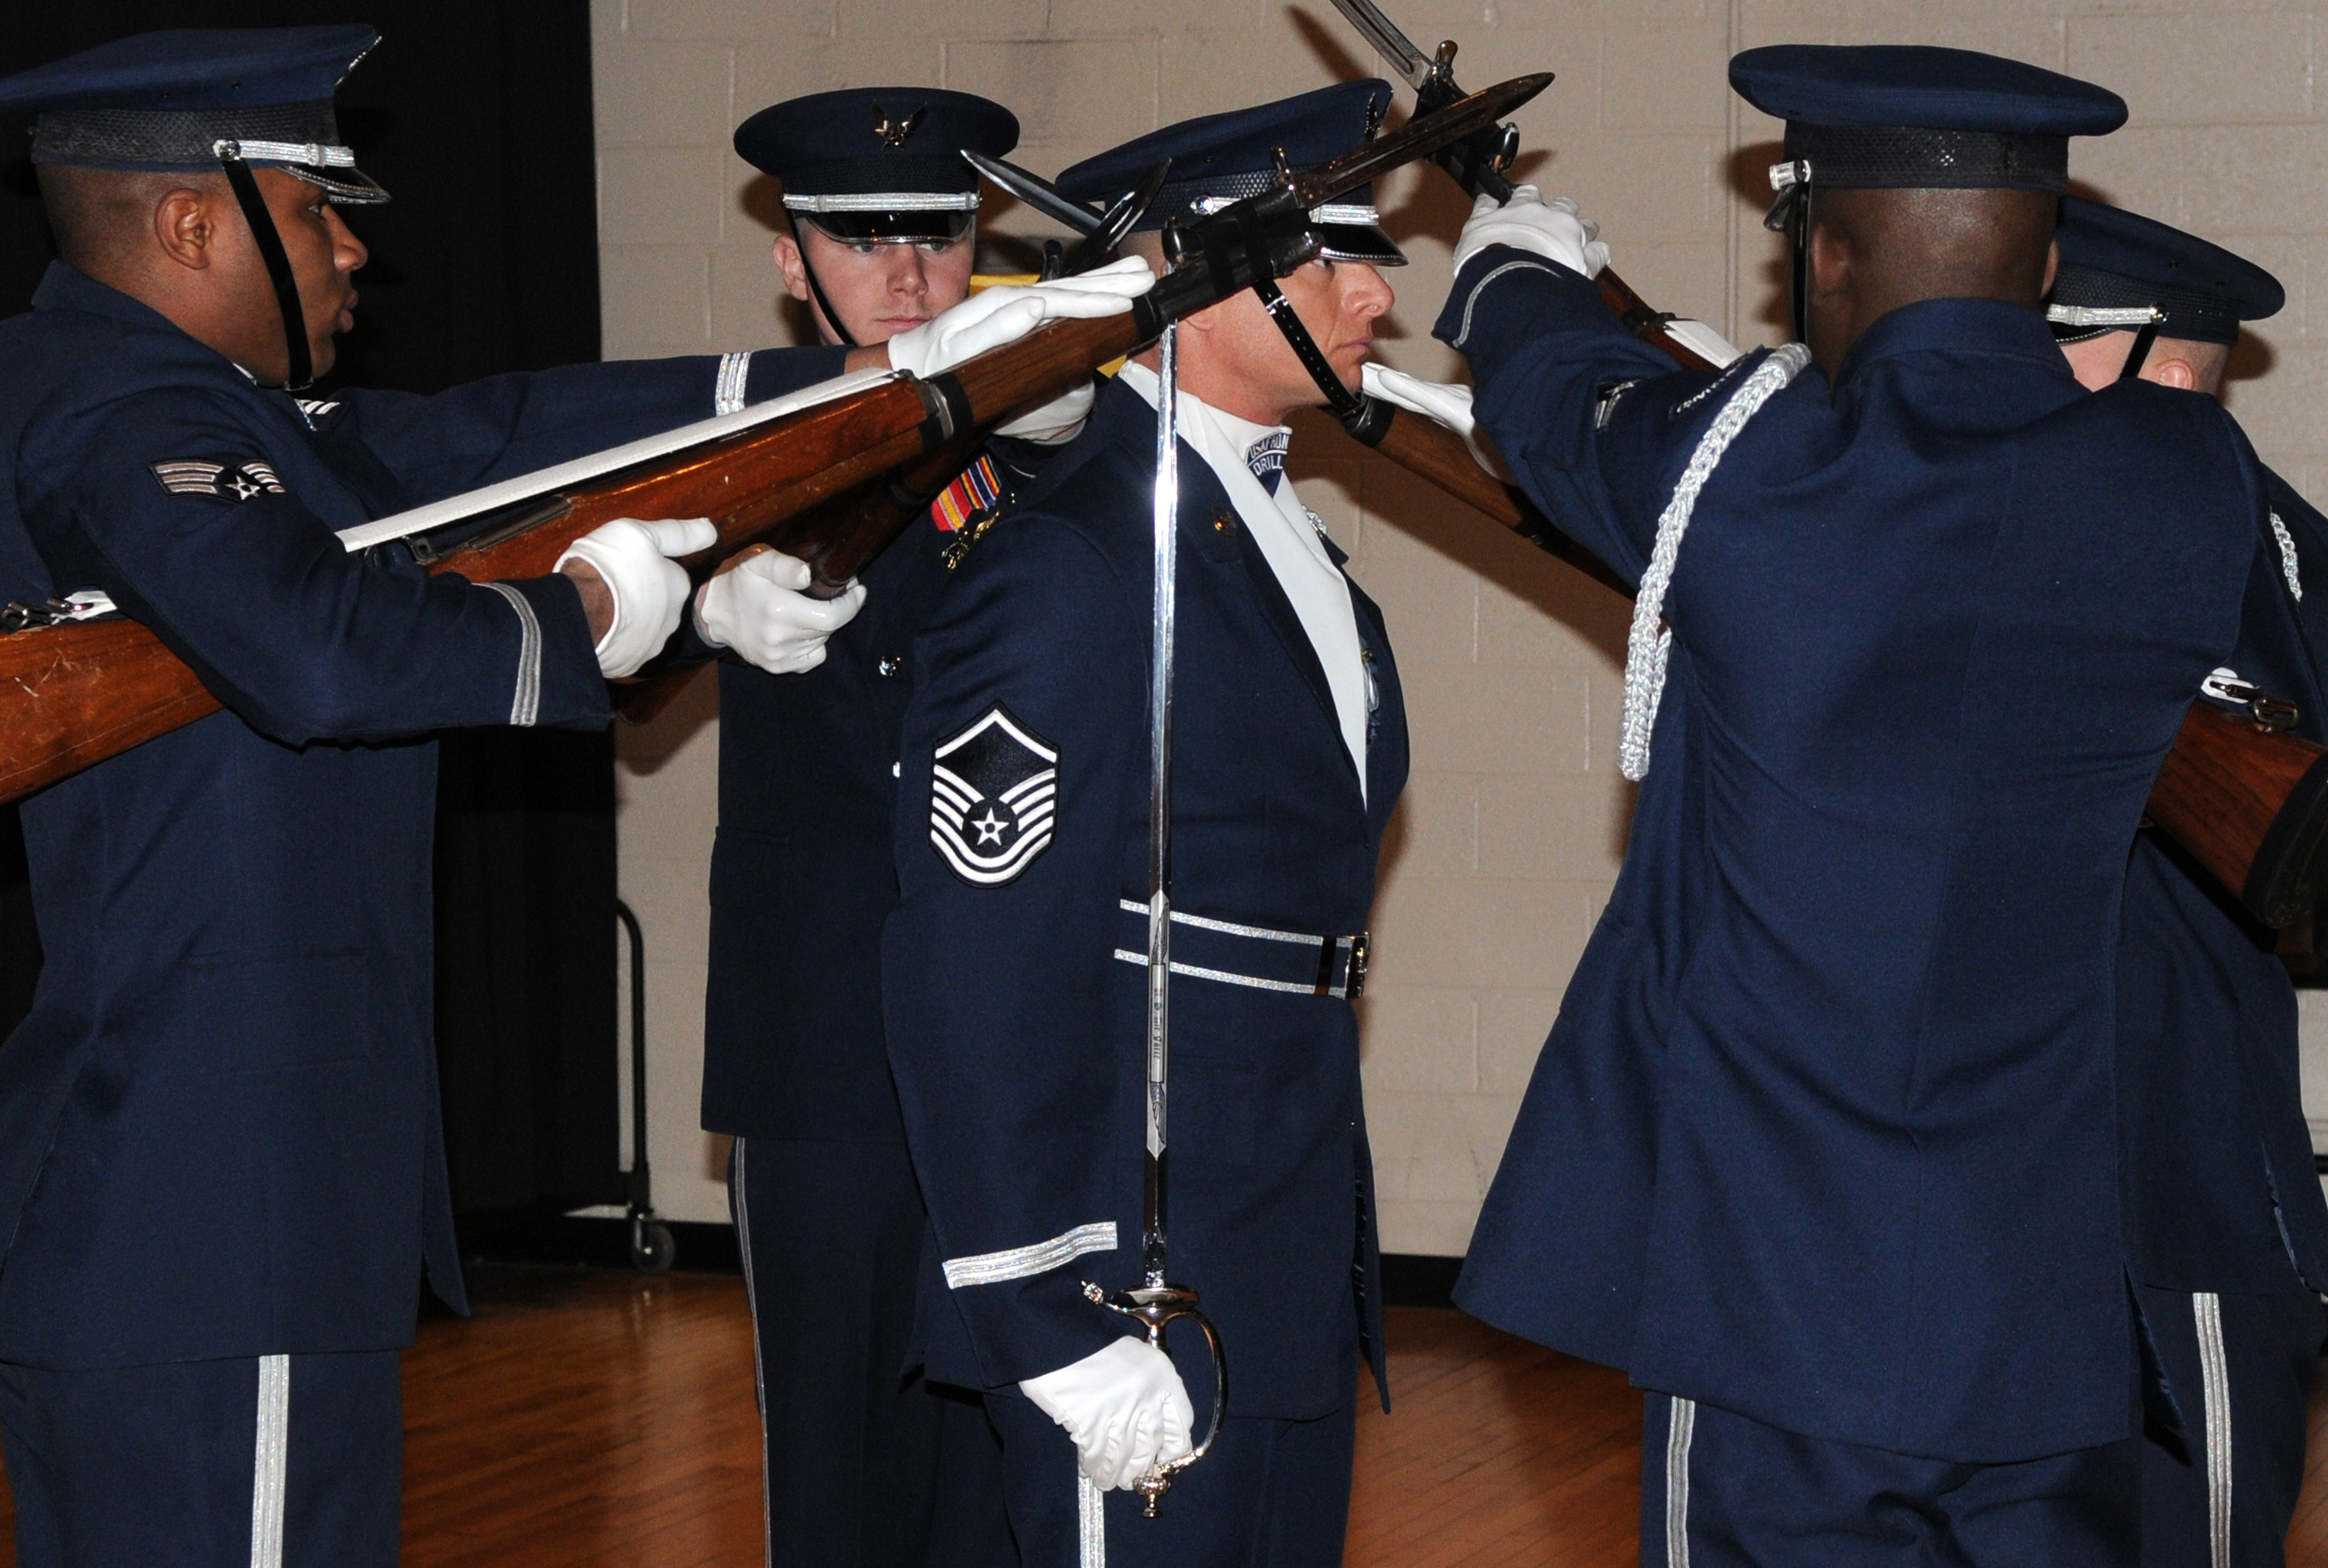 U.S. Air Force Honor Guard Recruiting